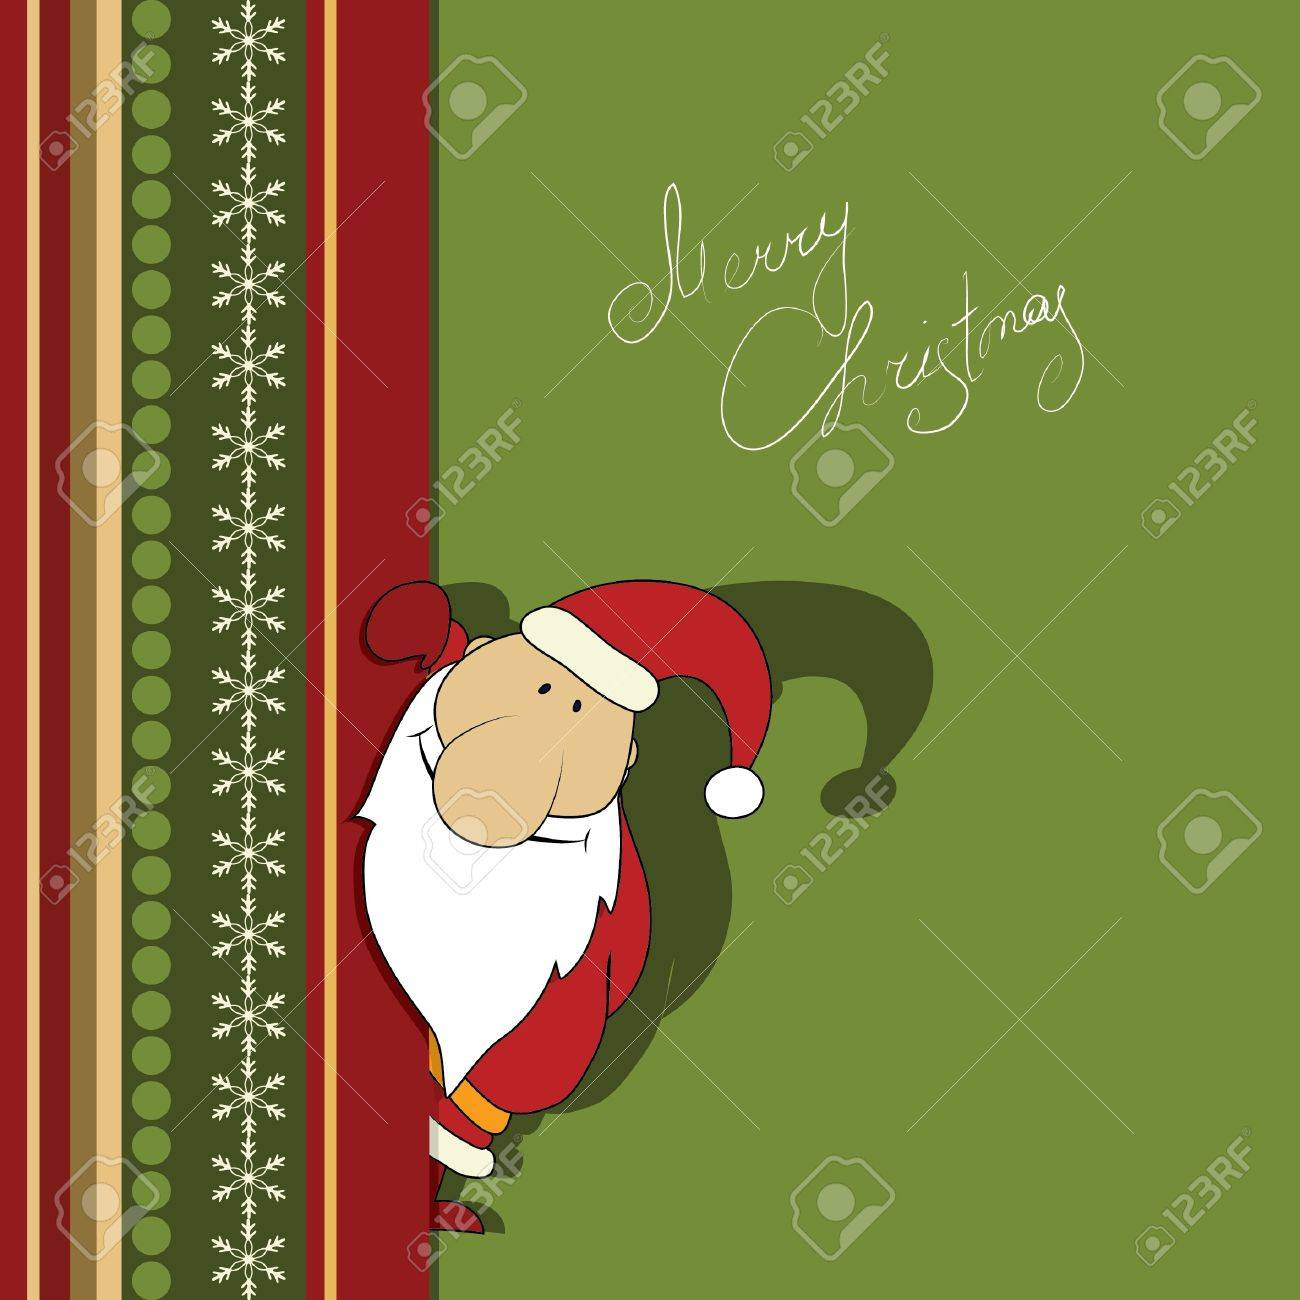 Christmas illustration with Santa. Series. Look more in my gallery Stock Vector - 10181572